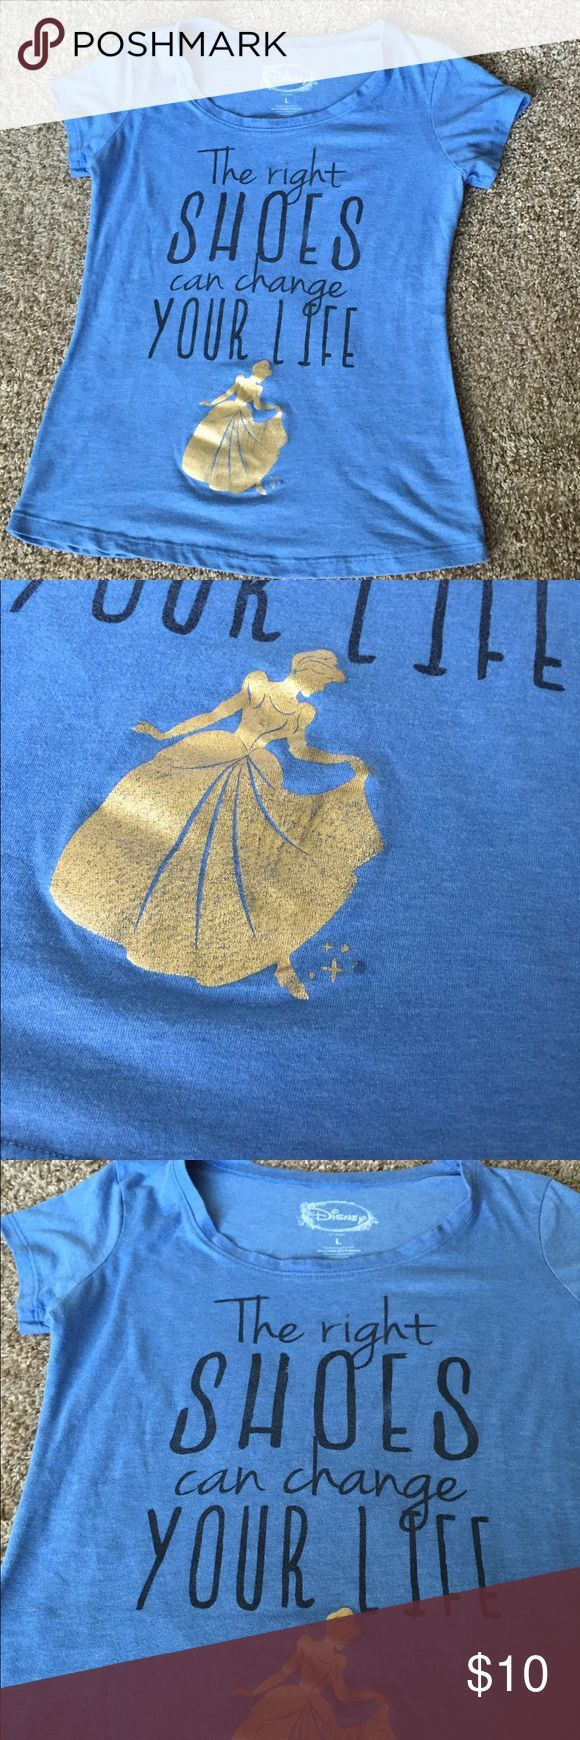 Disney tee Disney Cinderella T-shirt. It is in great condition minus a small part that is missing some gold  (picture 2). Size large. Can fit a medium. Disney Tops Tees - Short Sleeve - damen shirts, h and m mens shirts, collarless shirts for mens online *sponsored https://www.pinterest.com/shirts_shirt/ https://www.pinterest.com/explore/shirts/ https://www.pinterest.com/shirts_shirt/shirts/ http://www.zumiez.com/mens/shirts.html